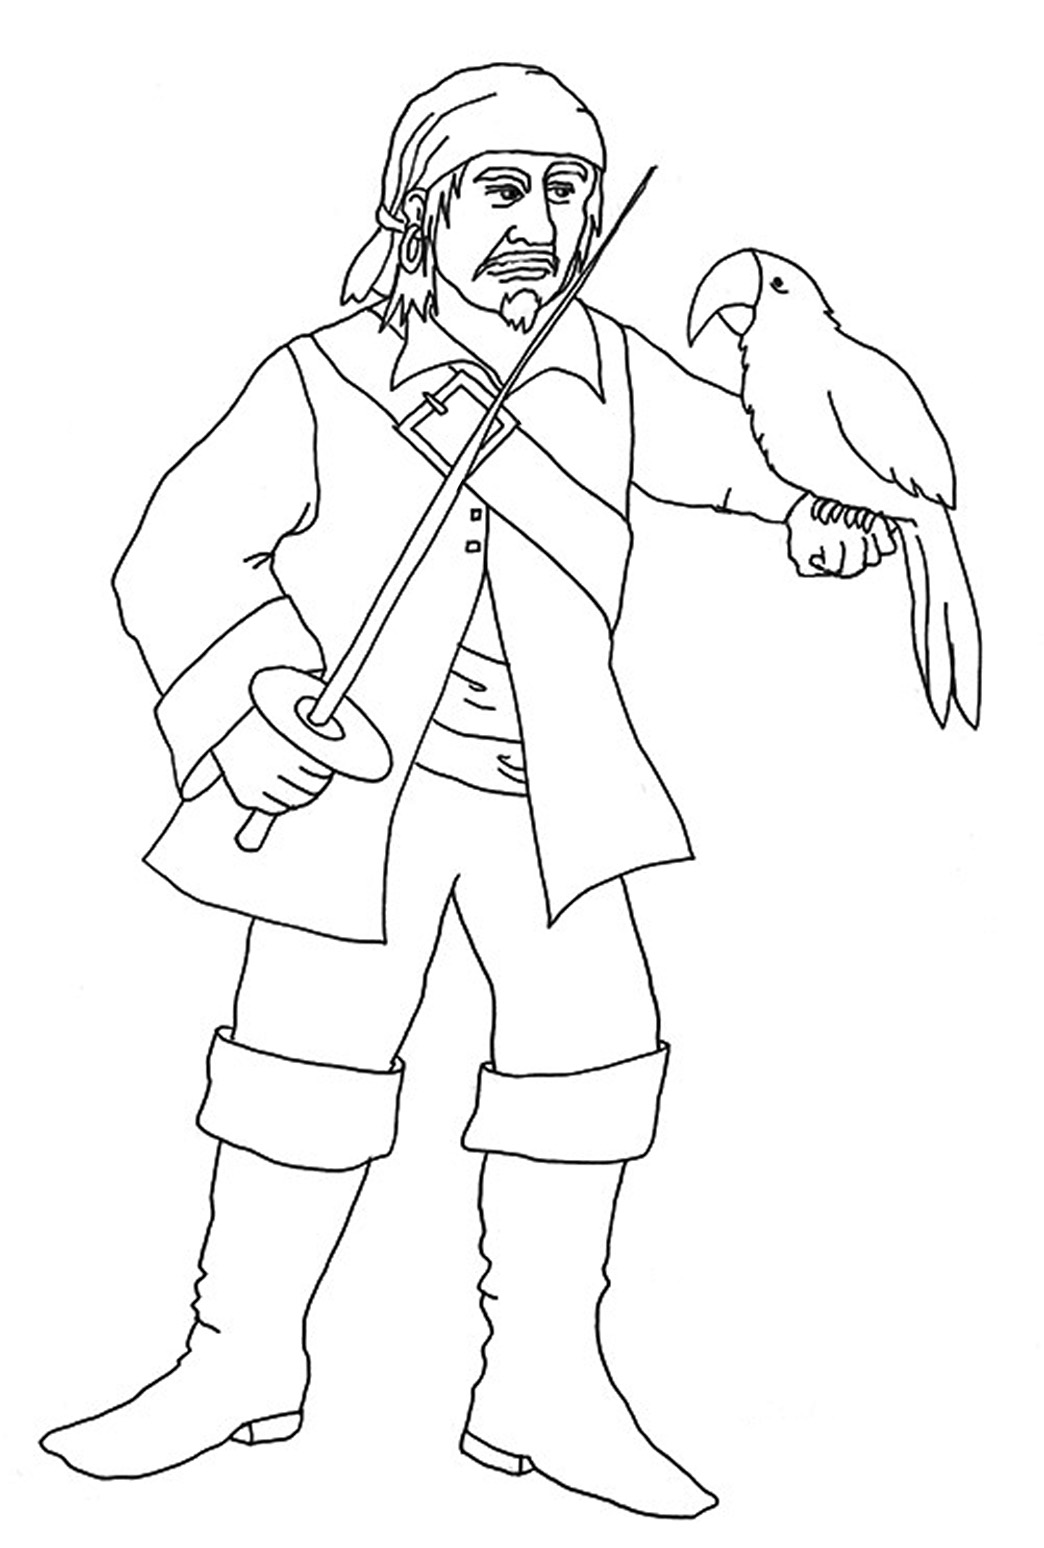 pirate images to colour pirate coloring pages coloring pages to download and print colour images to pirate